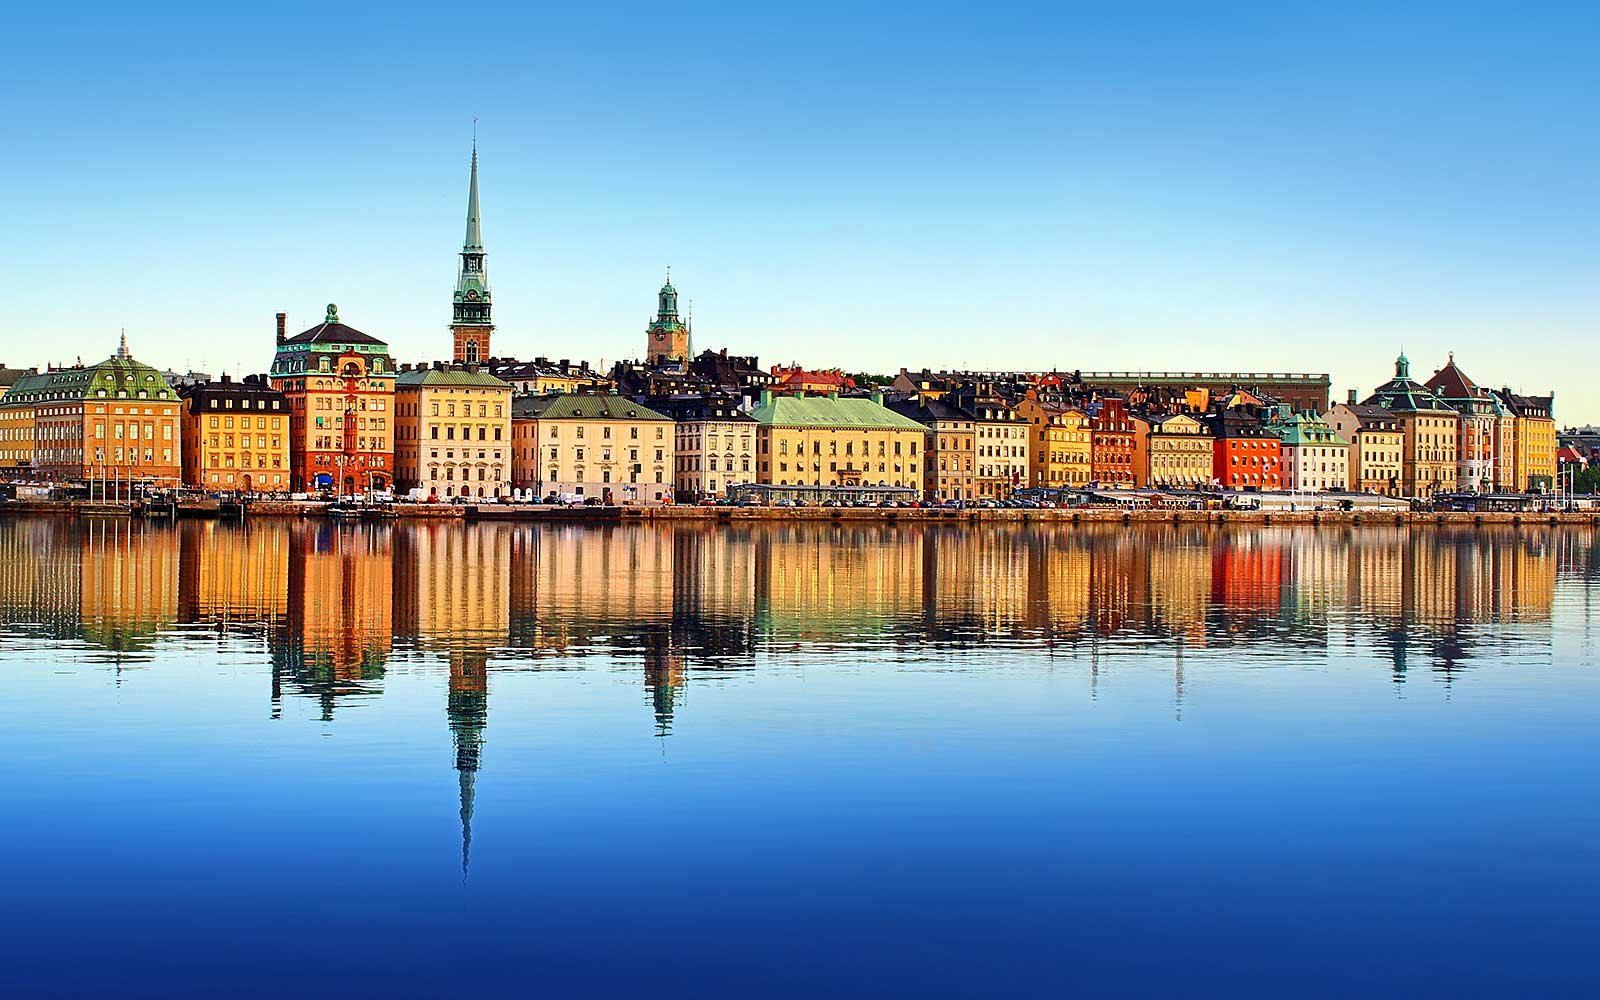 FLIGHT DEAL: $275 RT NYC to Stockholm